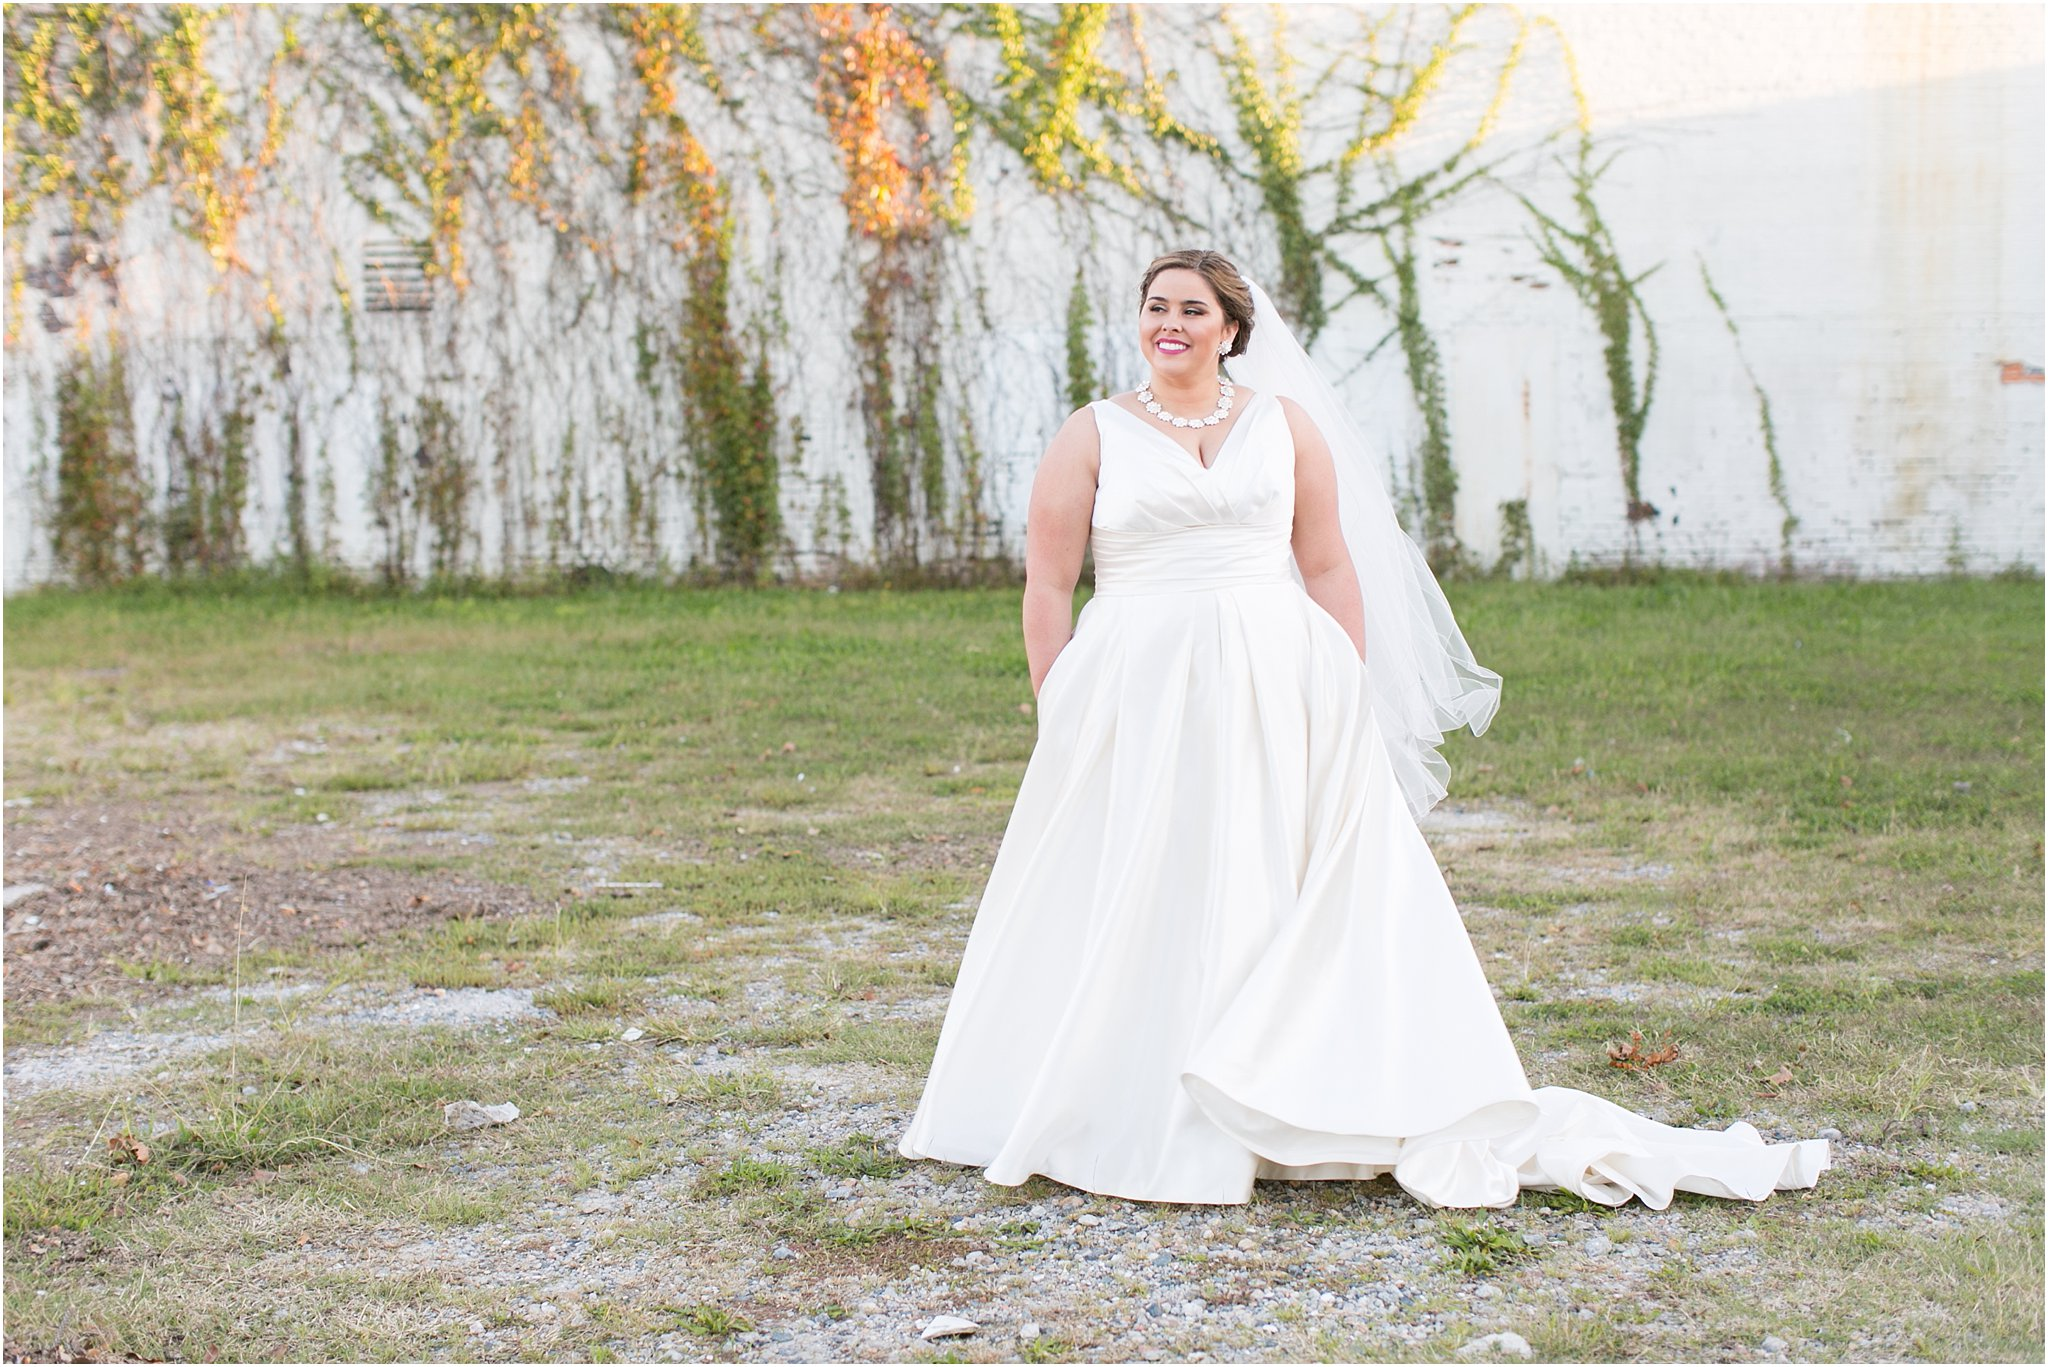 va_jessica_ryan_photography_virginia_wedding_norfolk_harrison_opera_house_norfolk_arts_district_portraits_3822